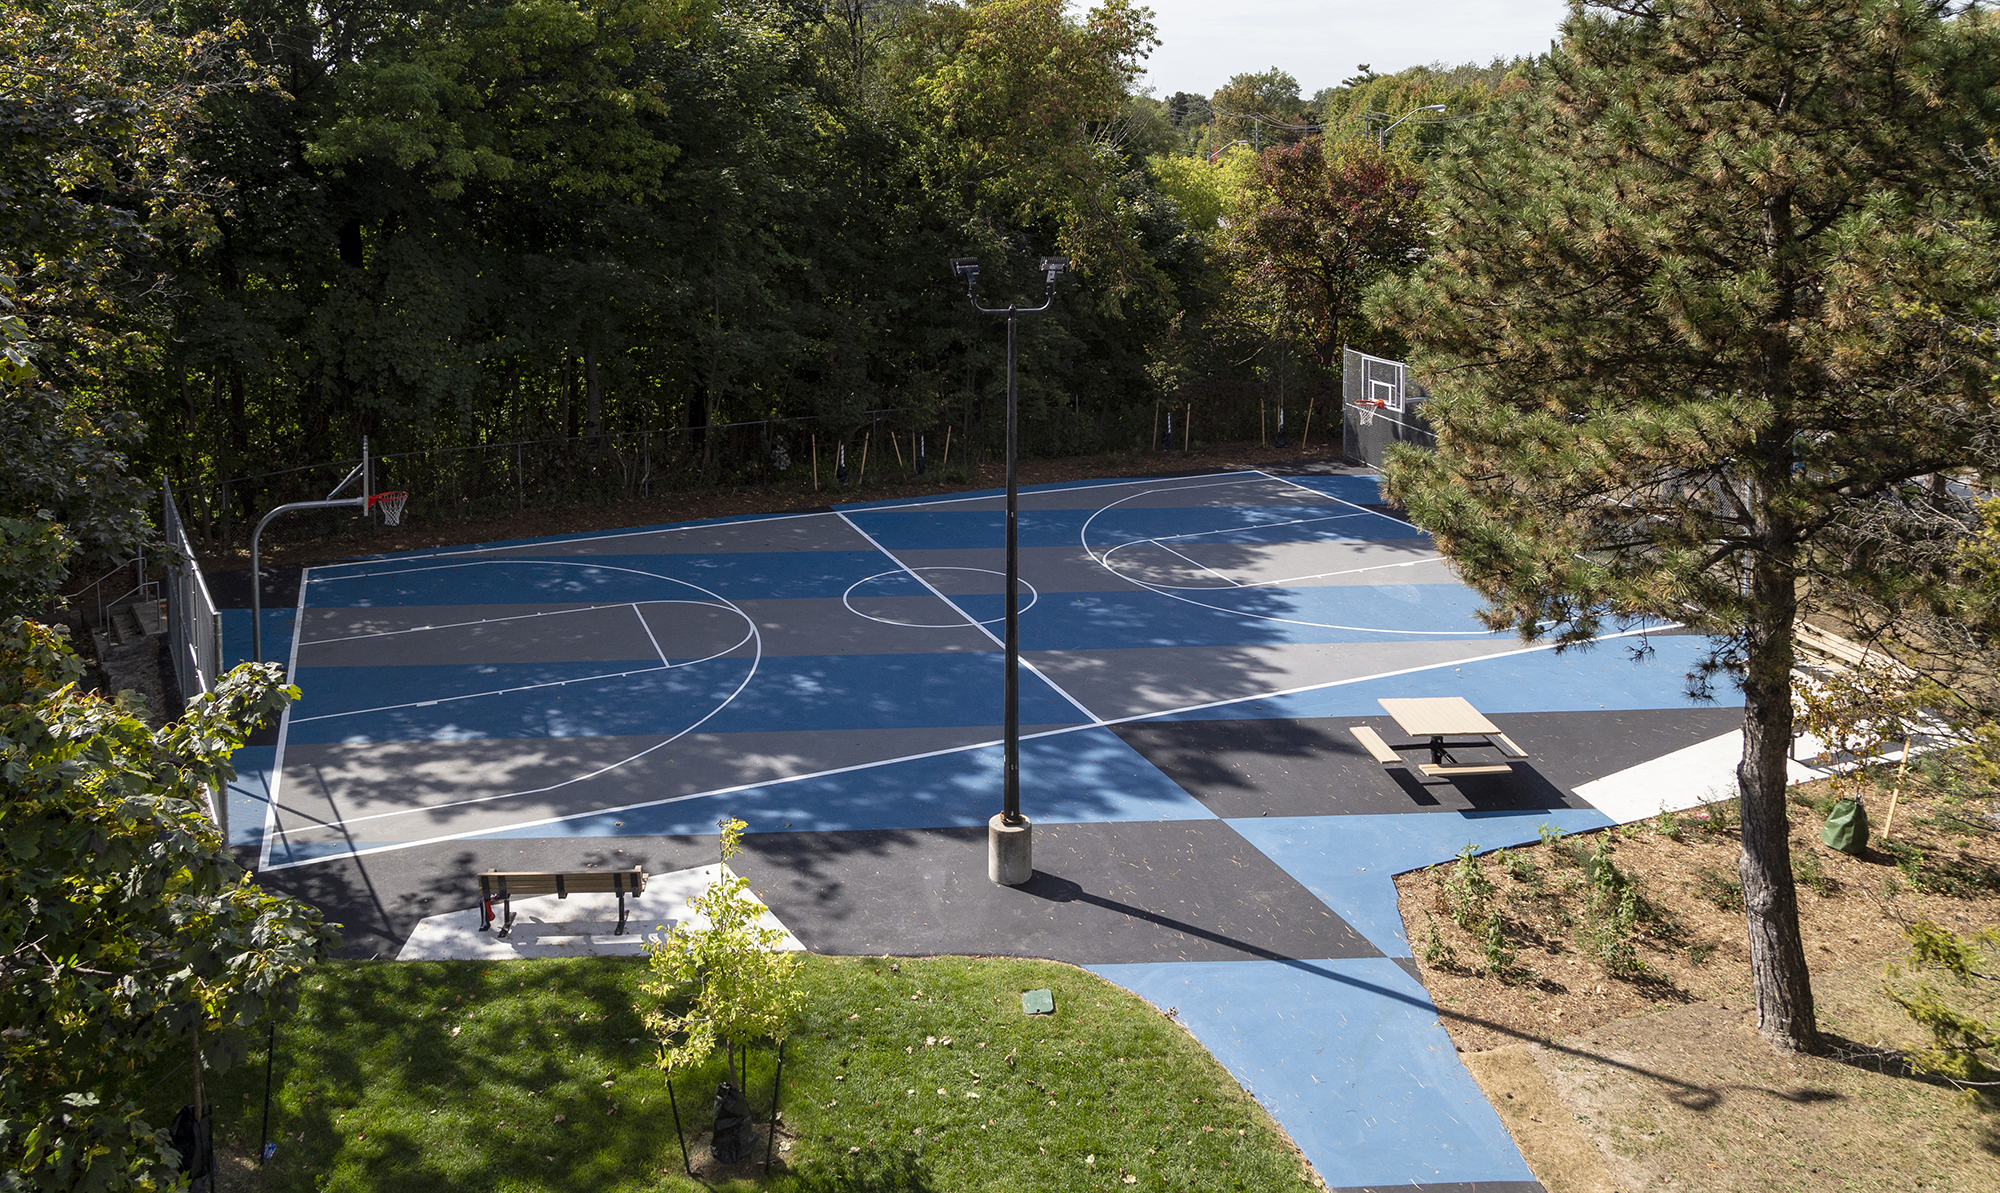 The basketball court at Lawrence-Orton